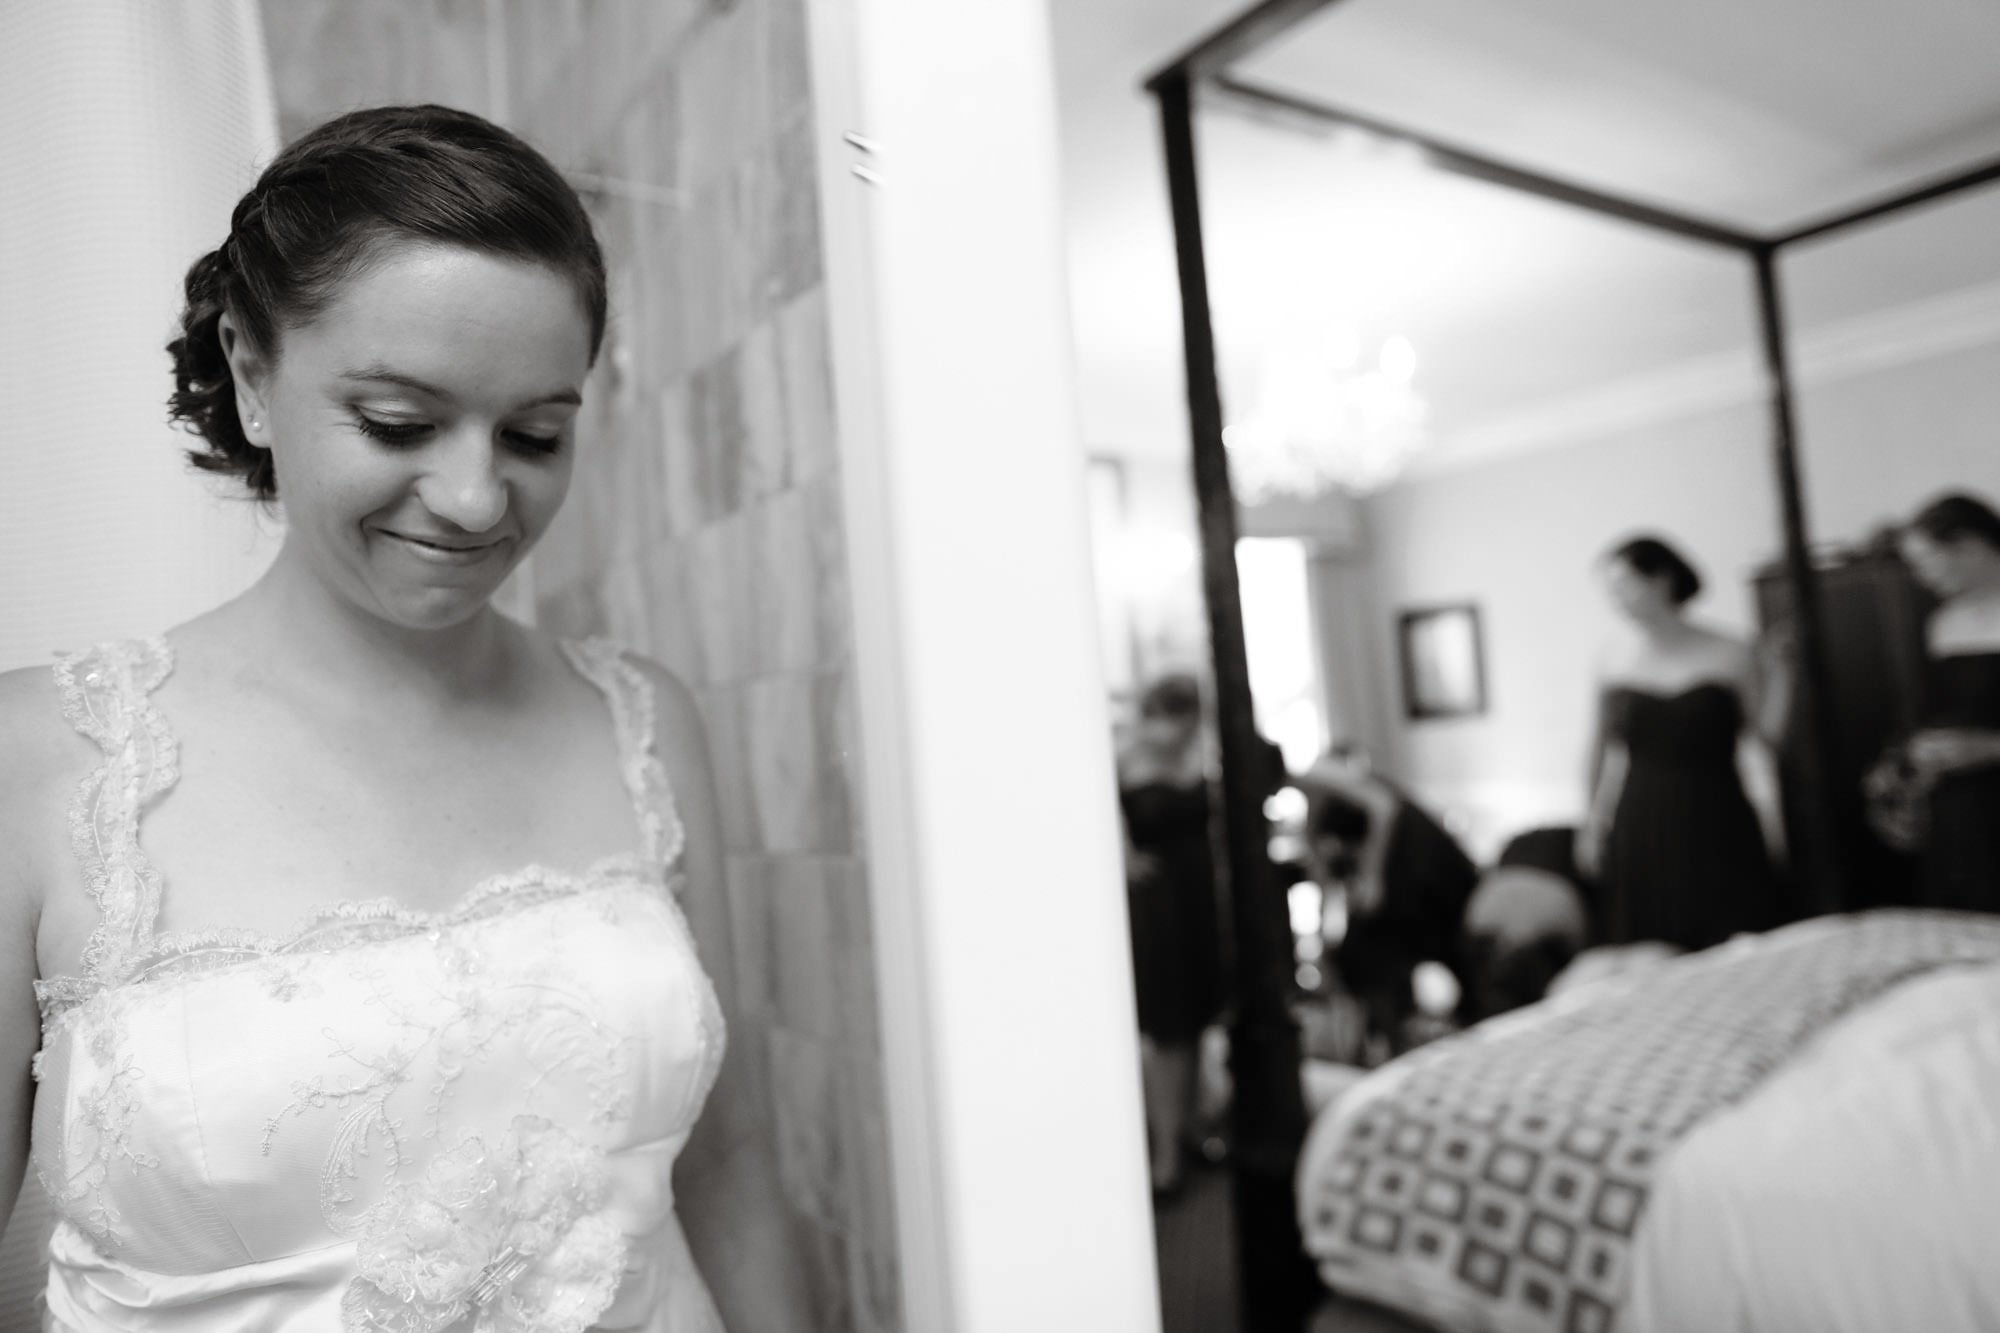 The bride smiles while putting on her wedding dress before the ceremony at Topedo Factory.